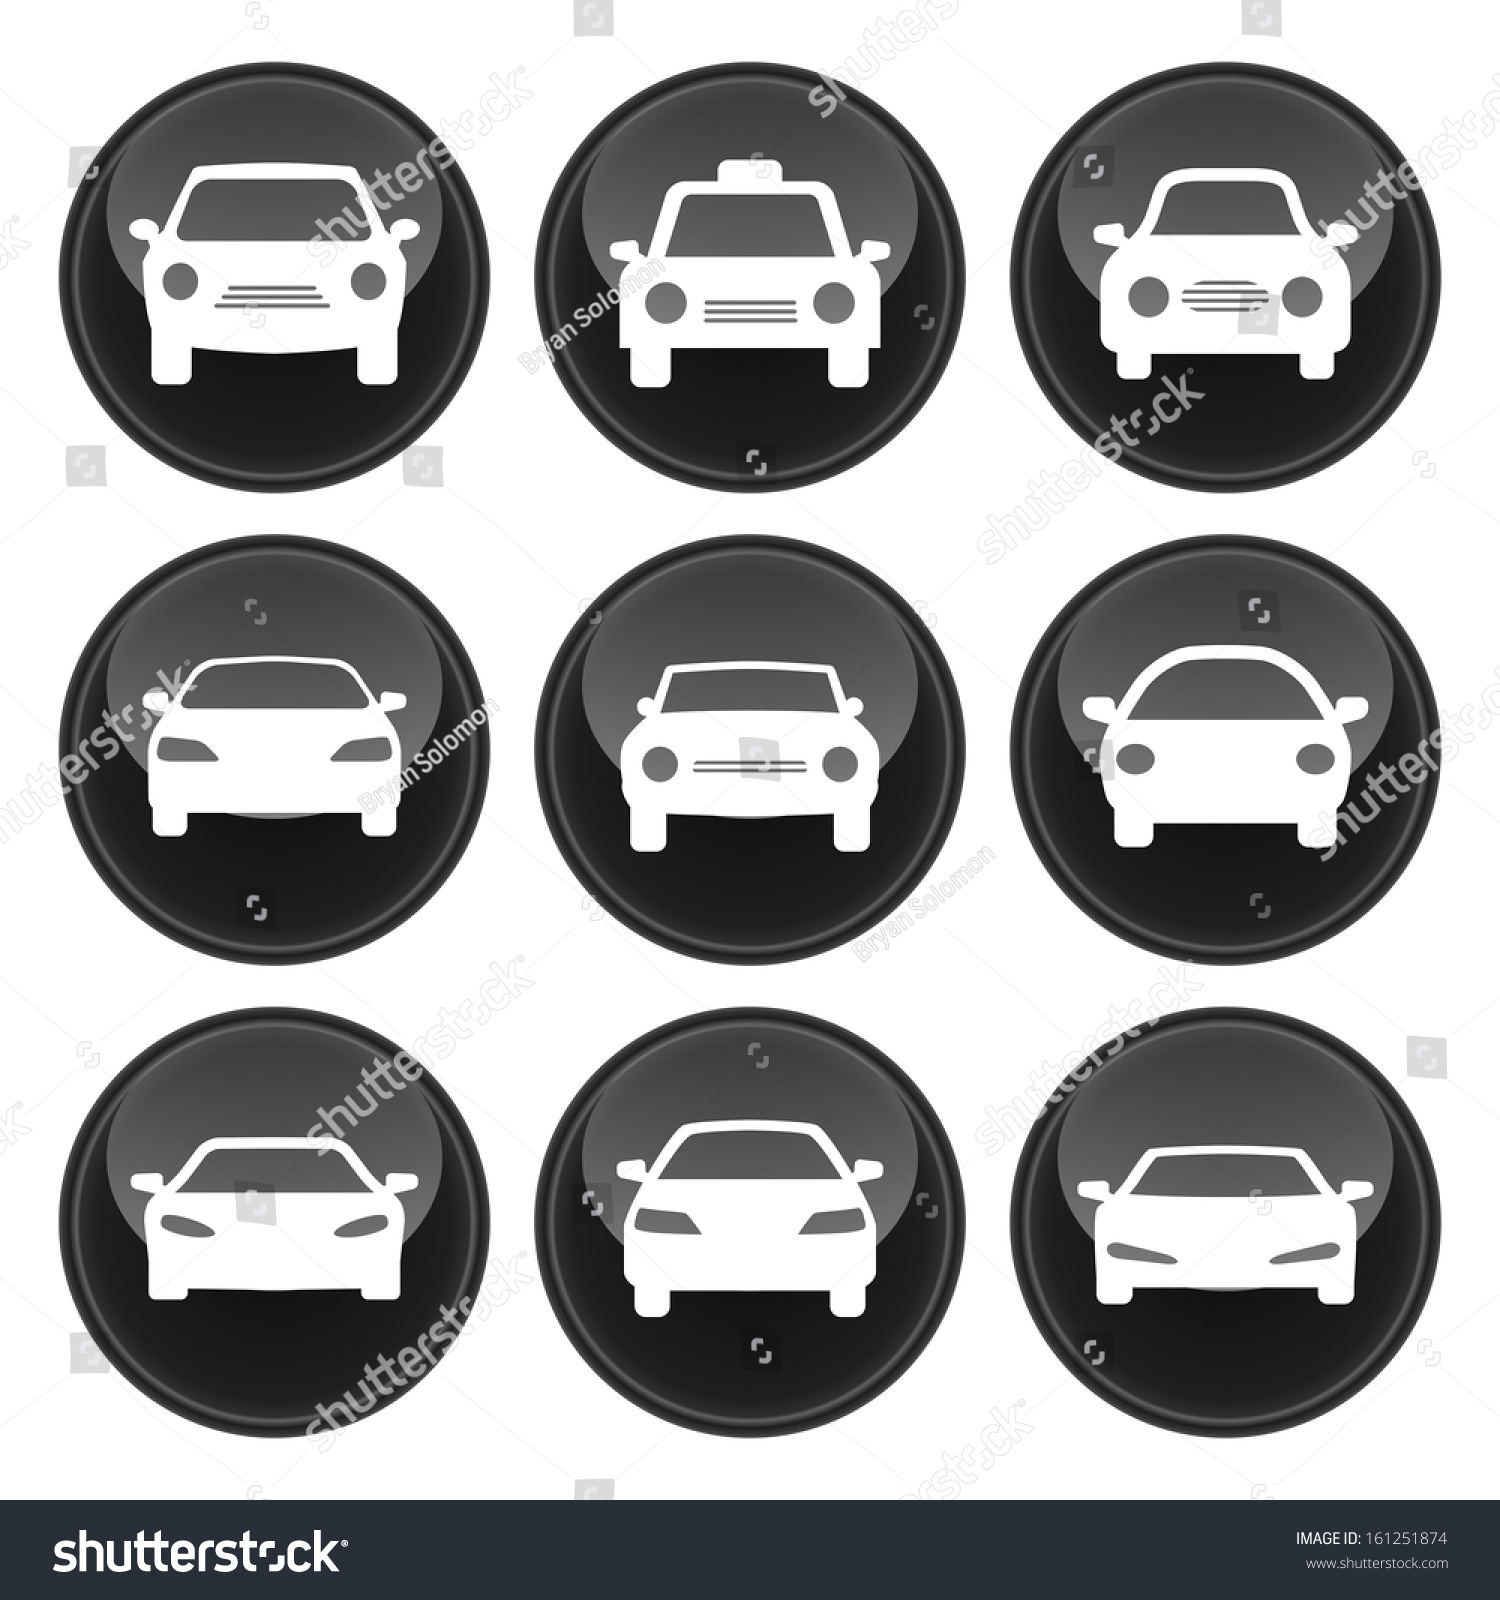 car icons glossy button icon set stock vector 161251874 shutterstock. Black Bedroom Furniture Sets. Home Design Ideas